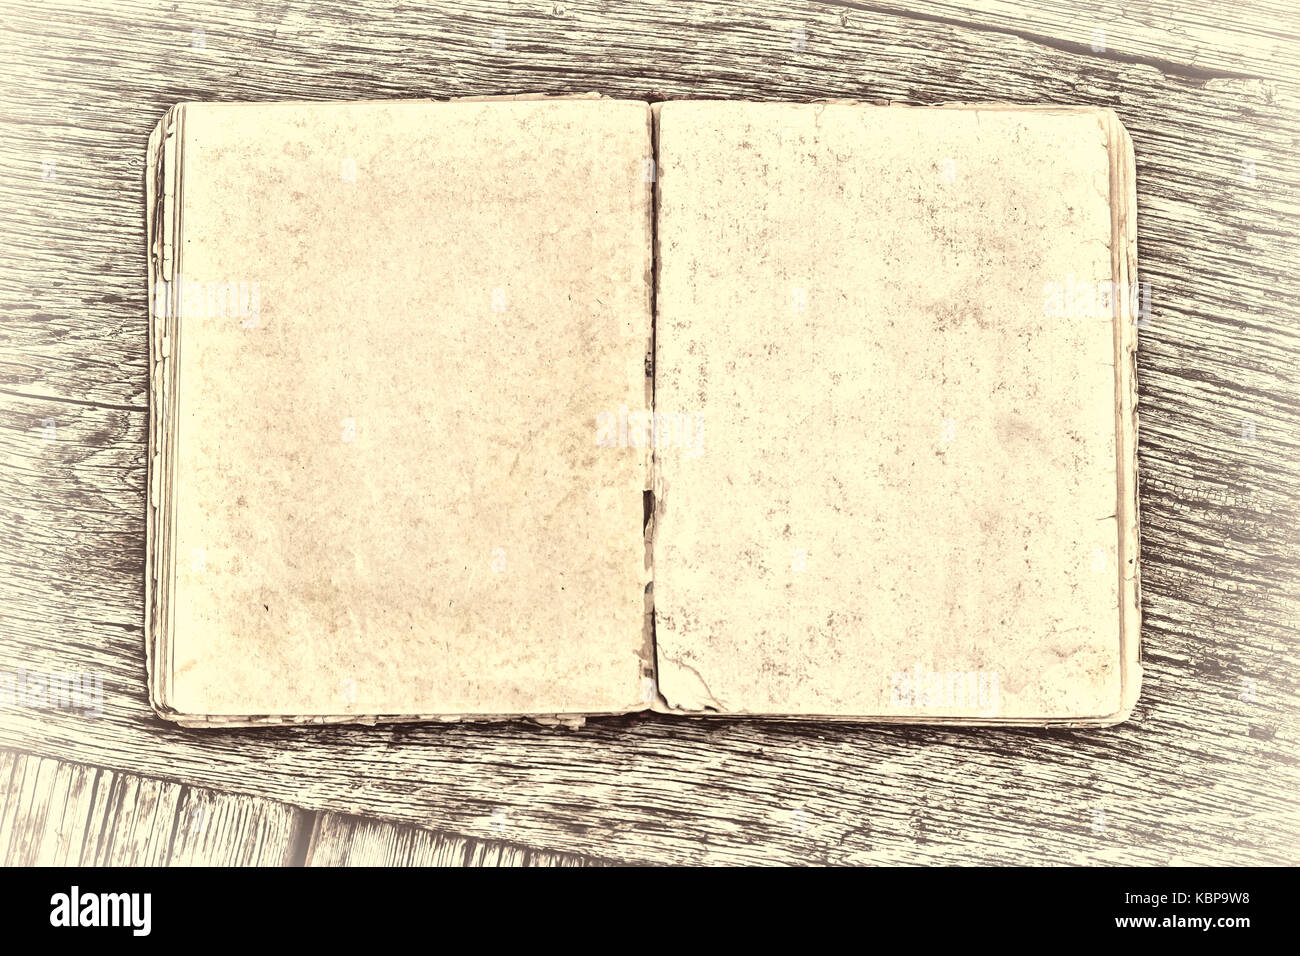 An old book on a wooden table. Country style Stock Photo